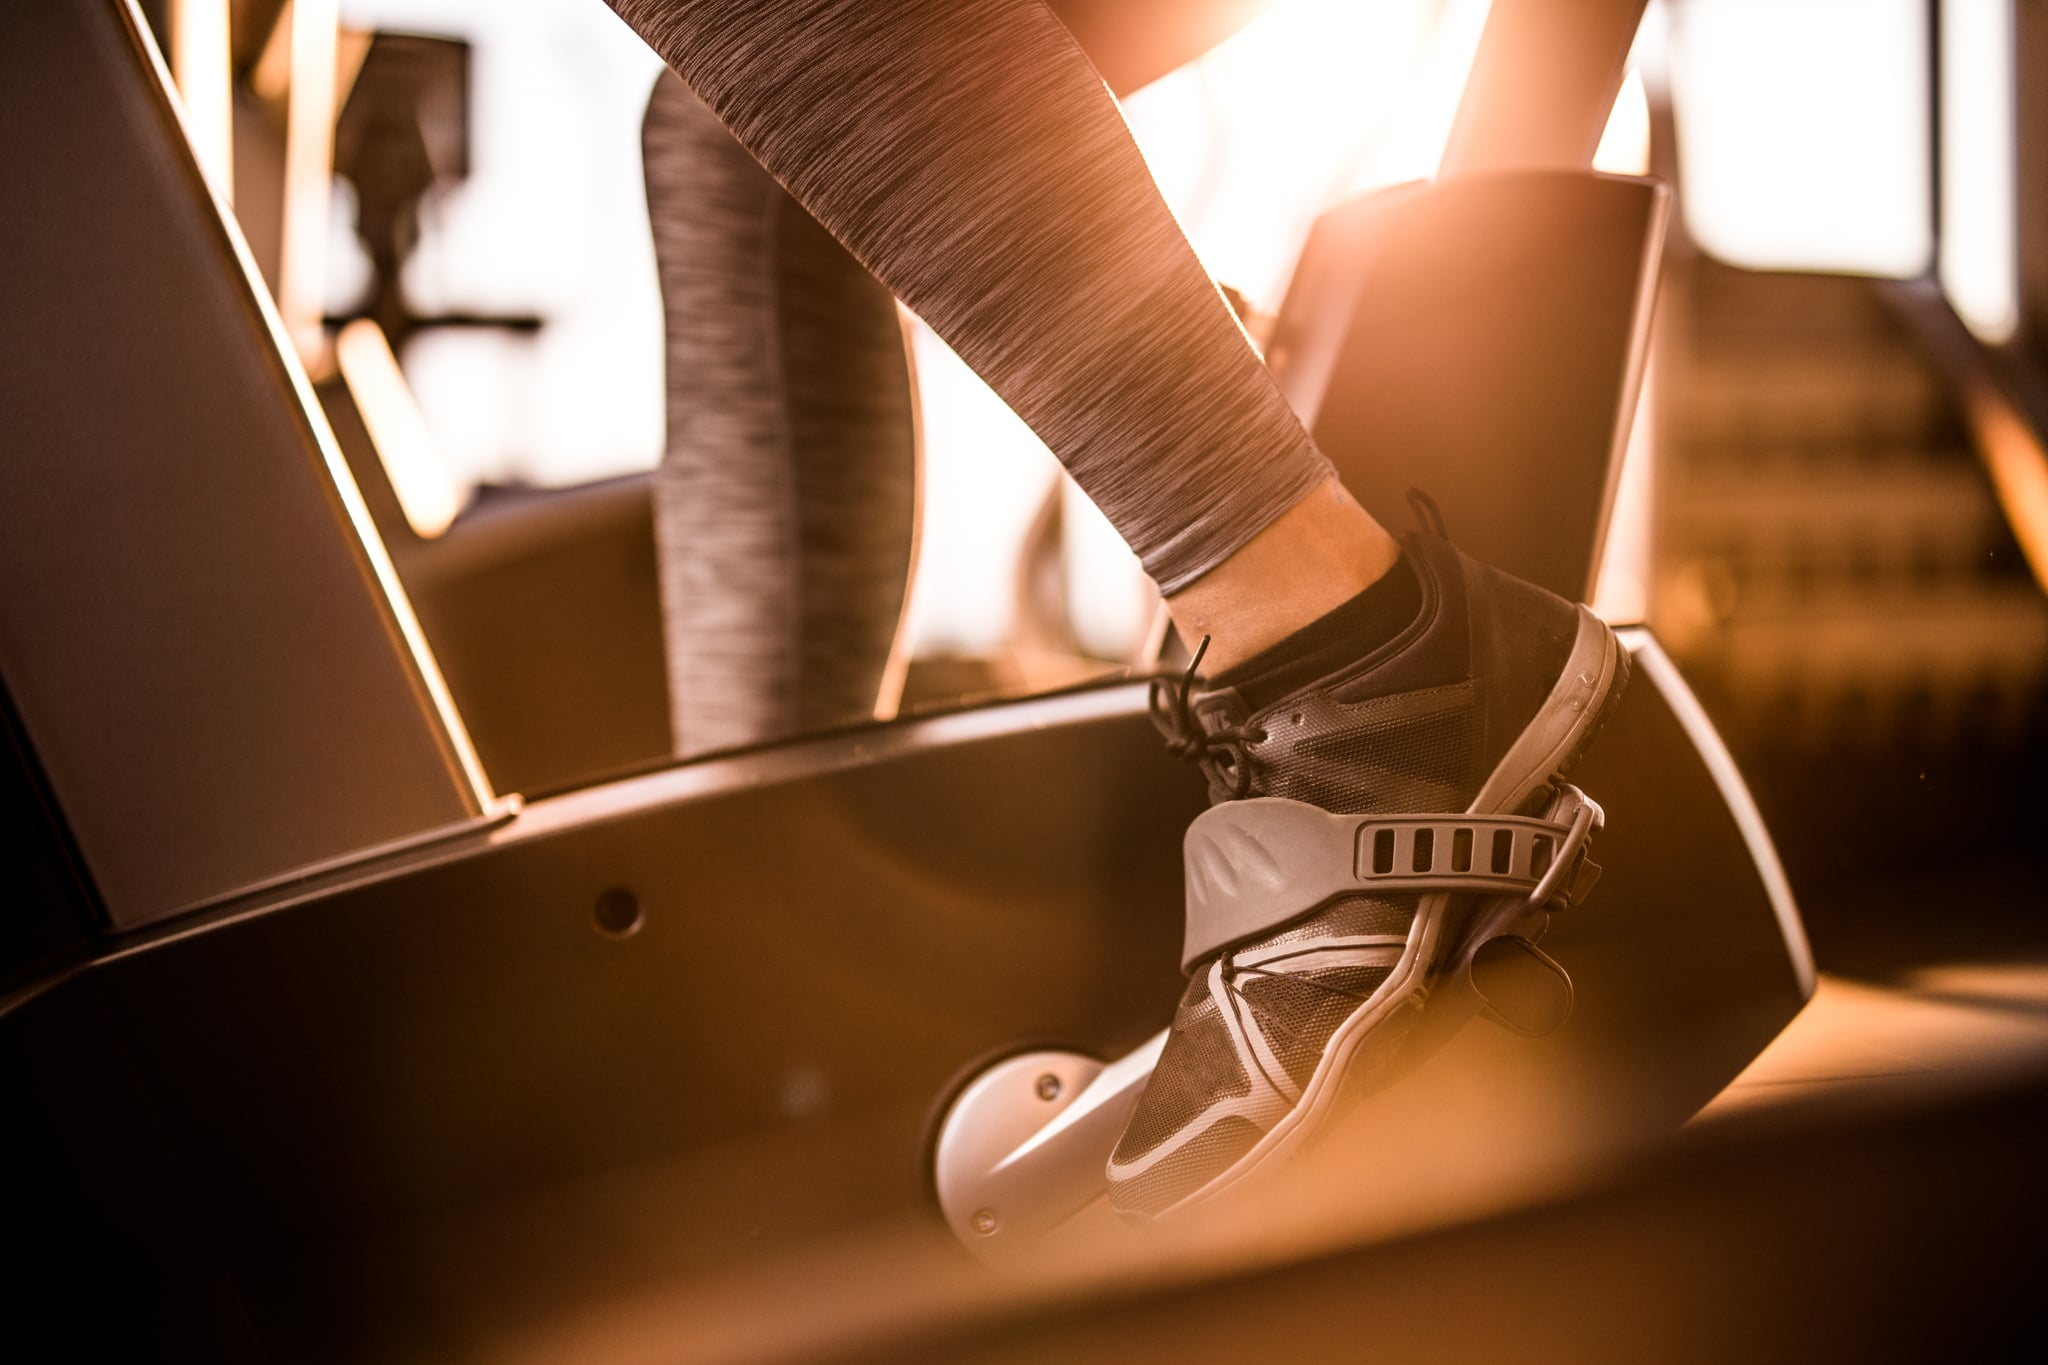 Close up of athletic person exercising on exercise bike in a gym.